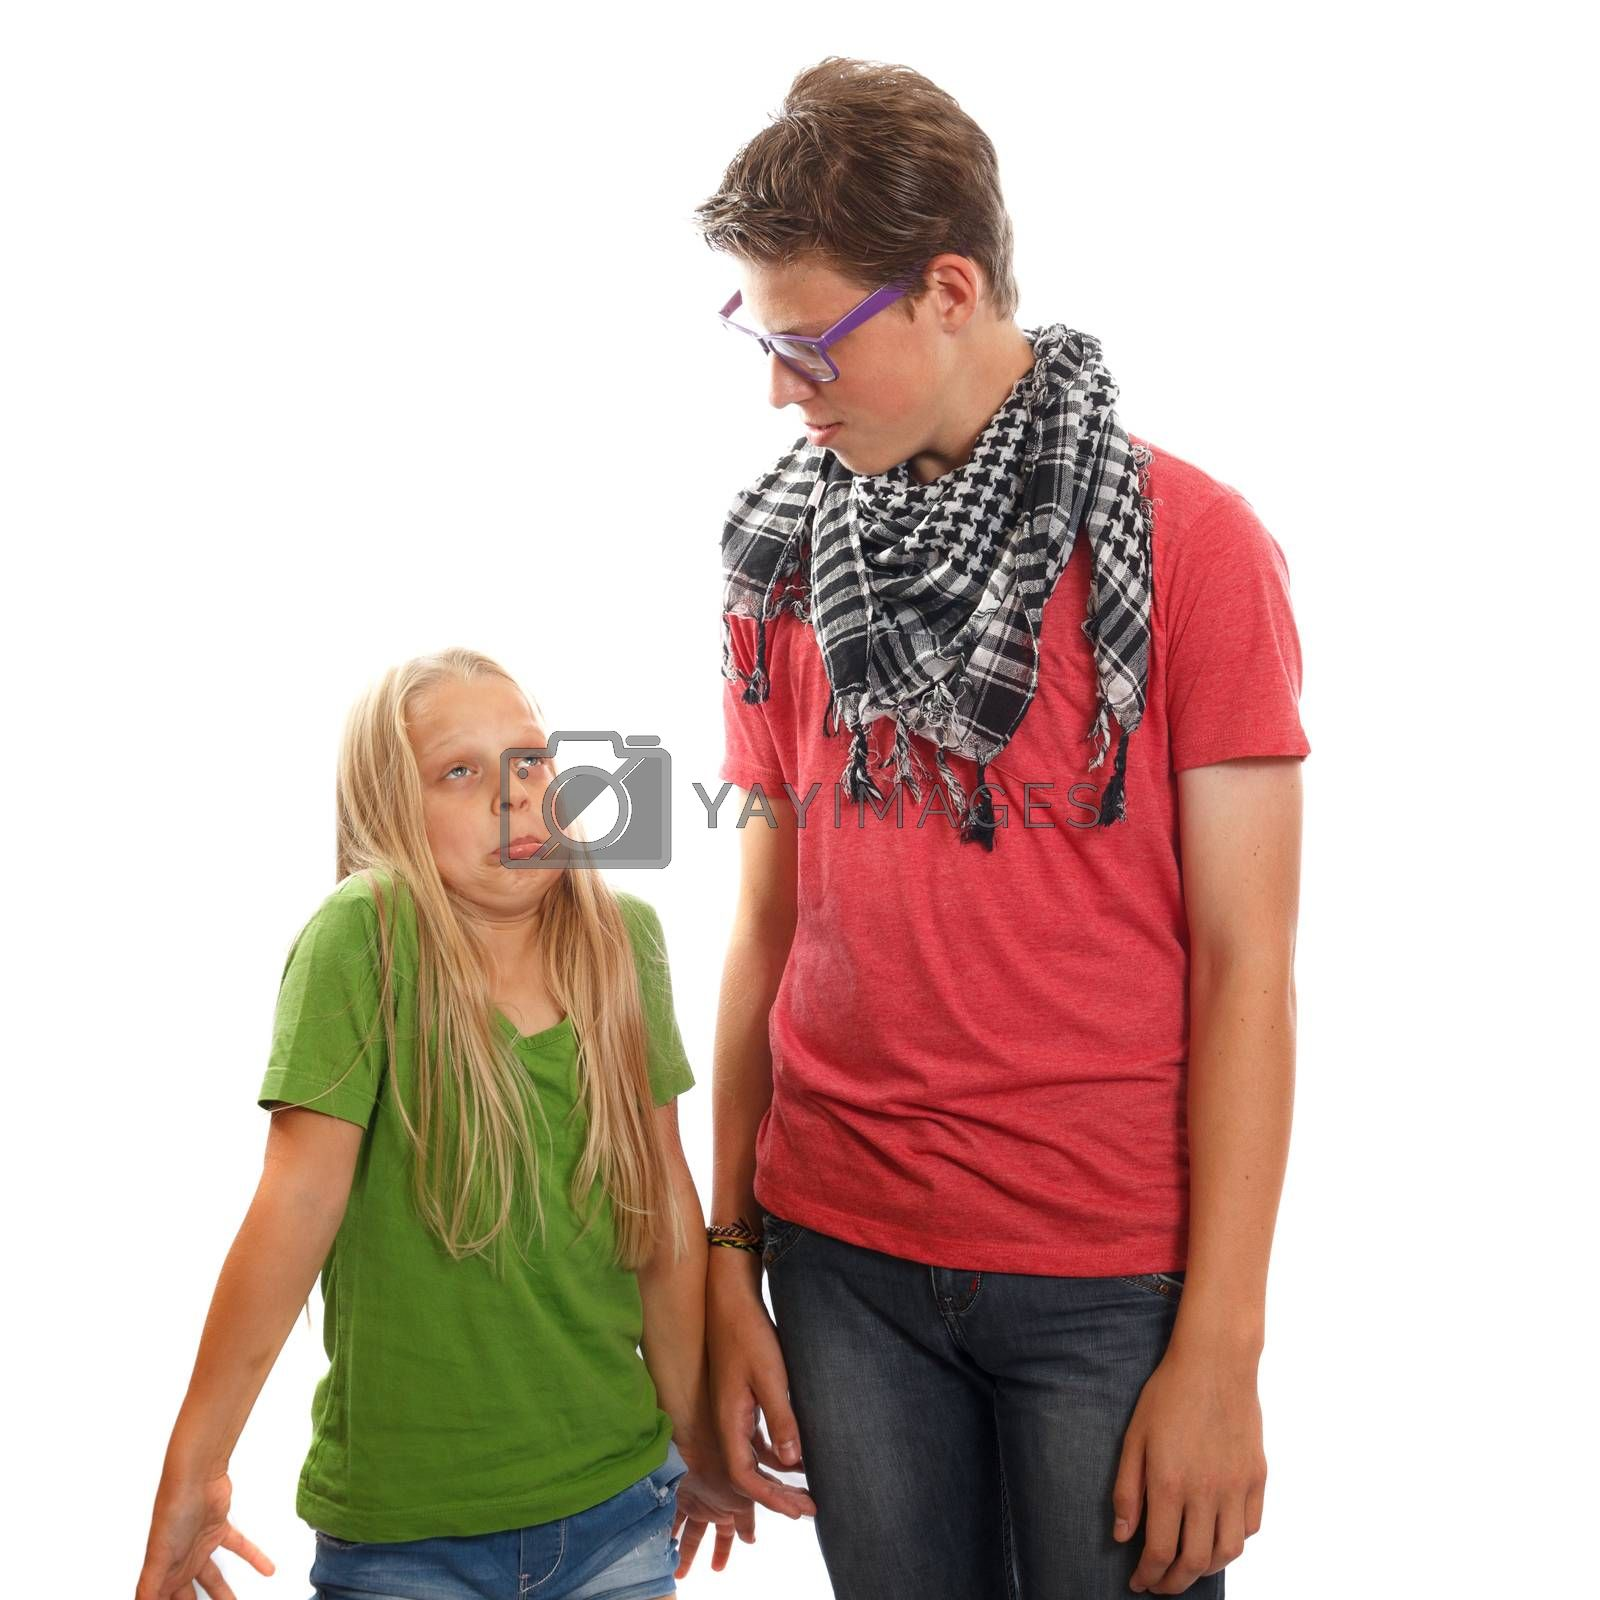 A hipster teen boy and a young girl